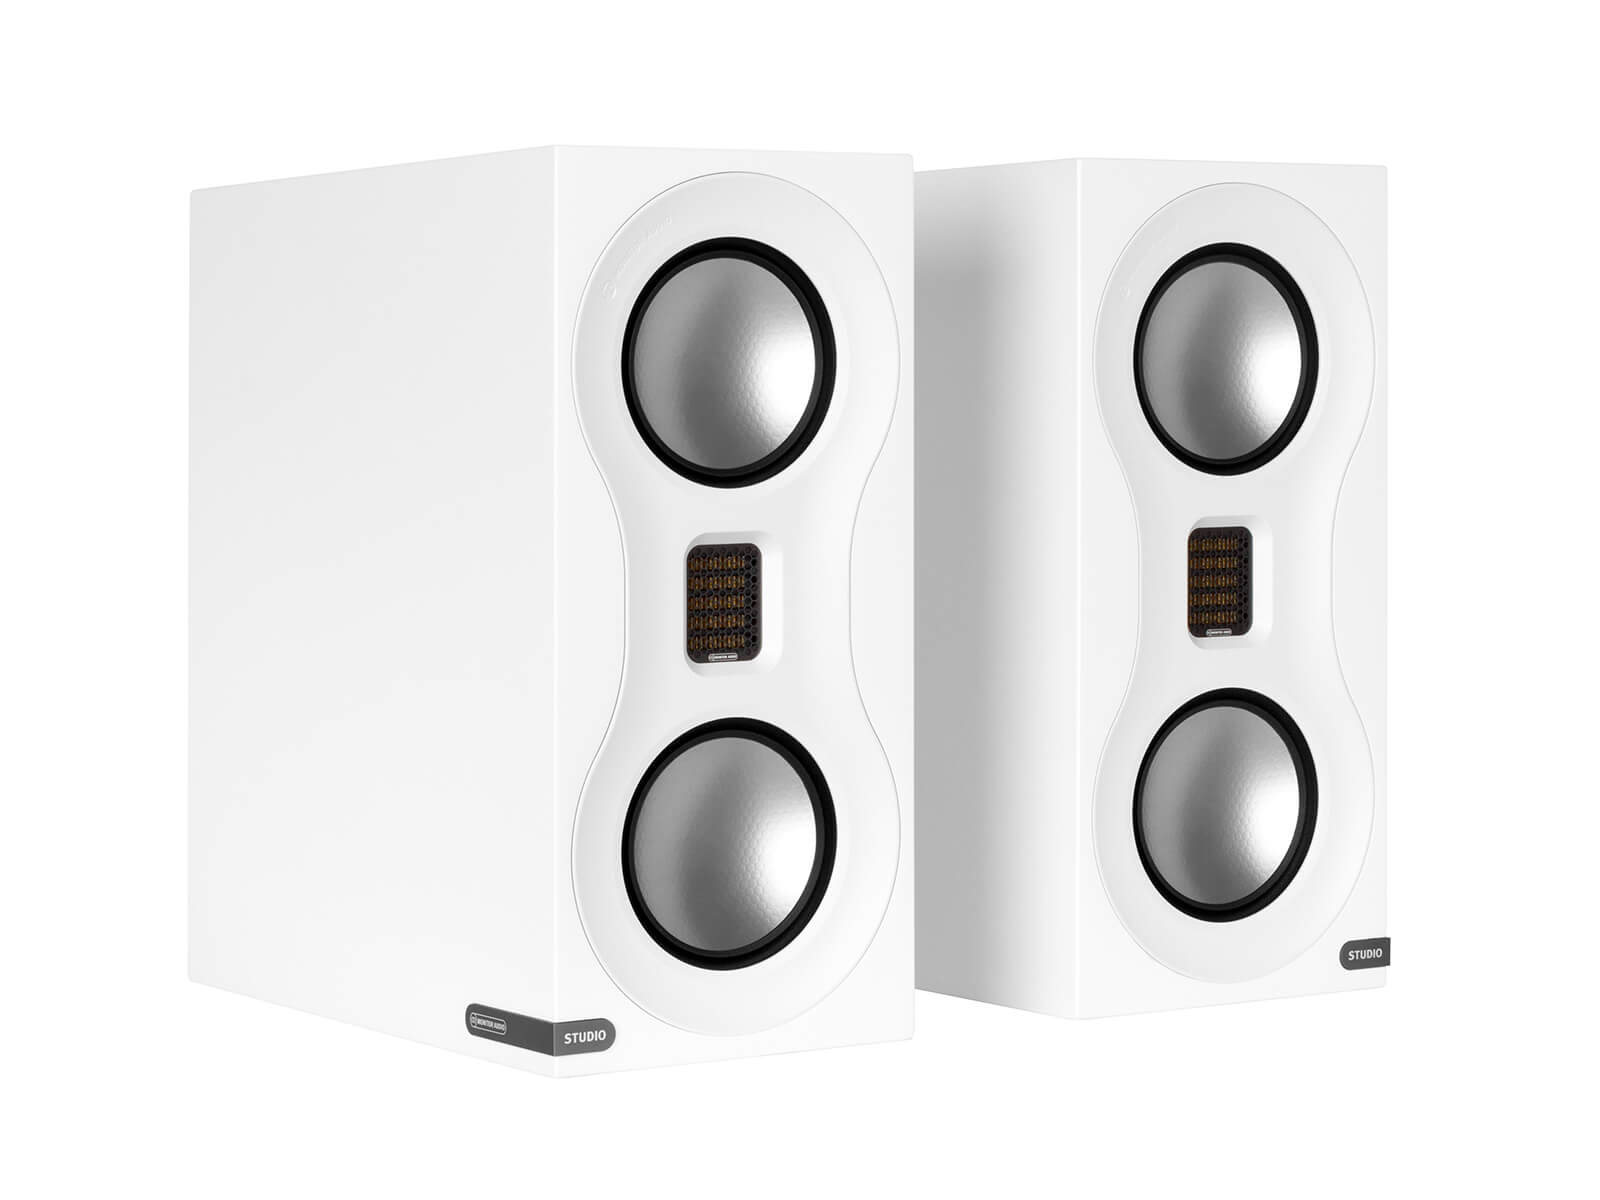 Studio, bookshelf speakers, with a satin white finish.